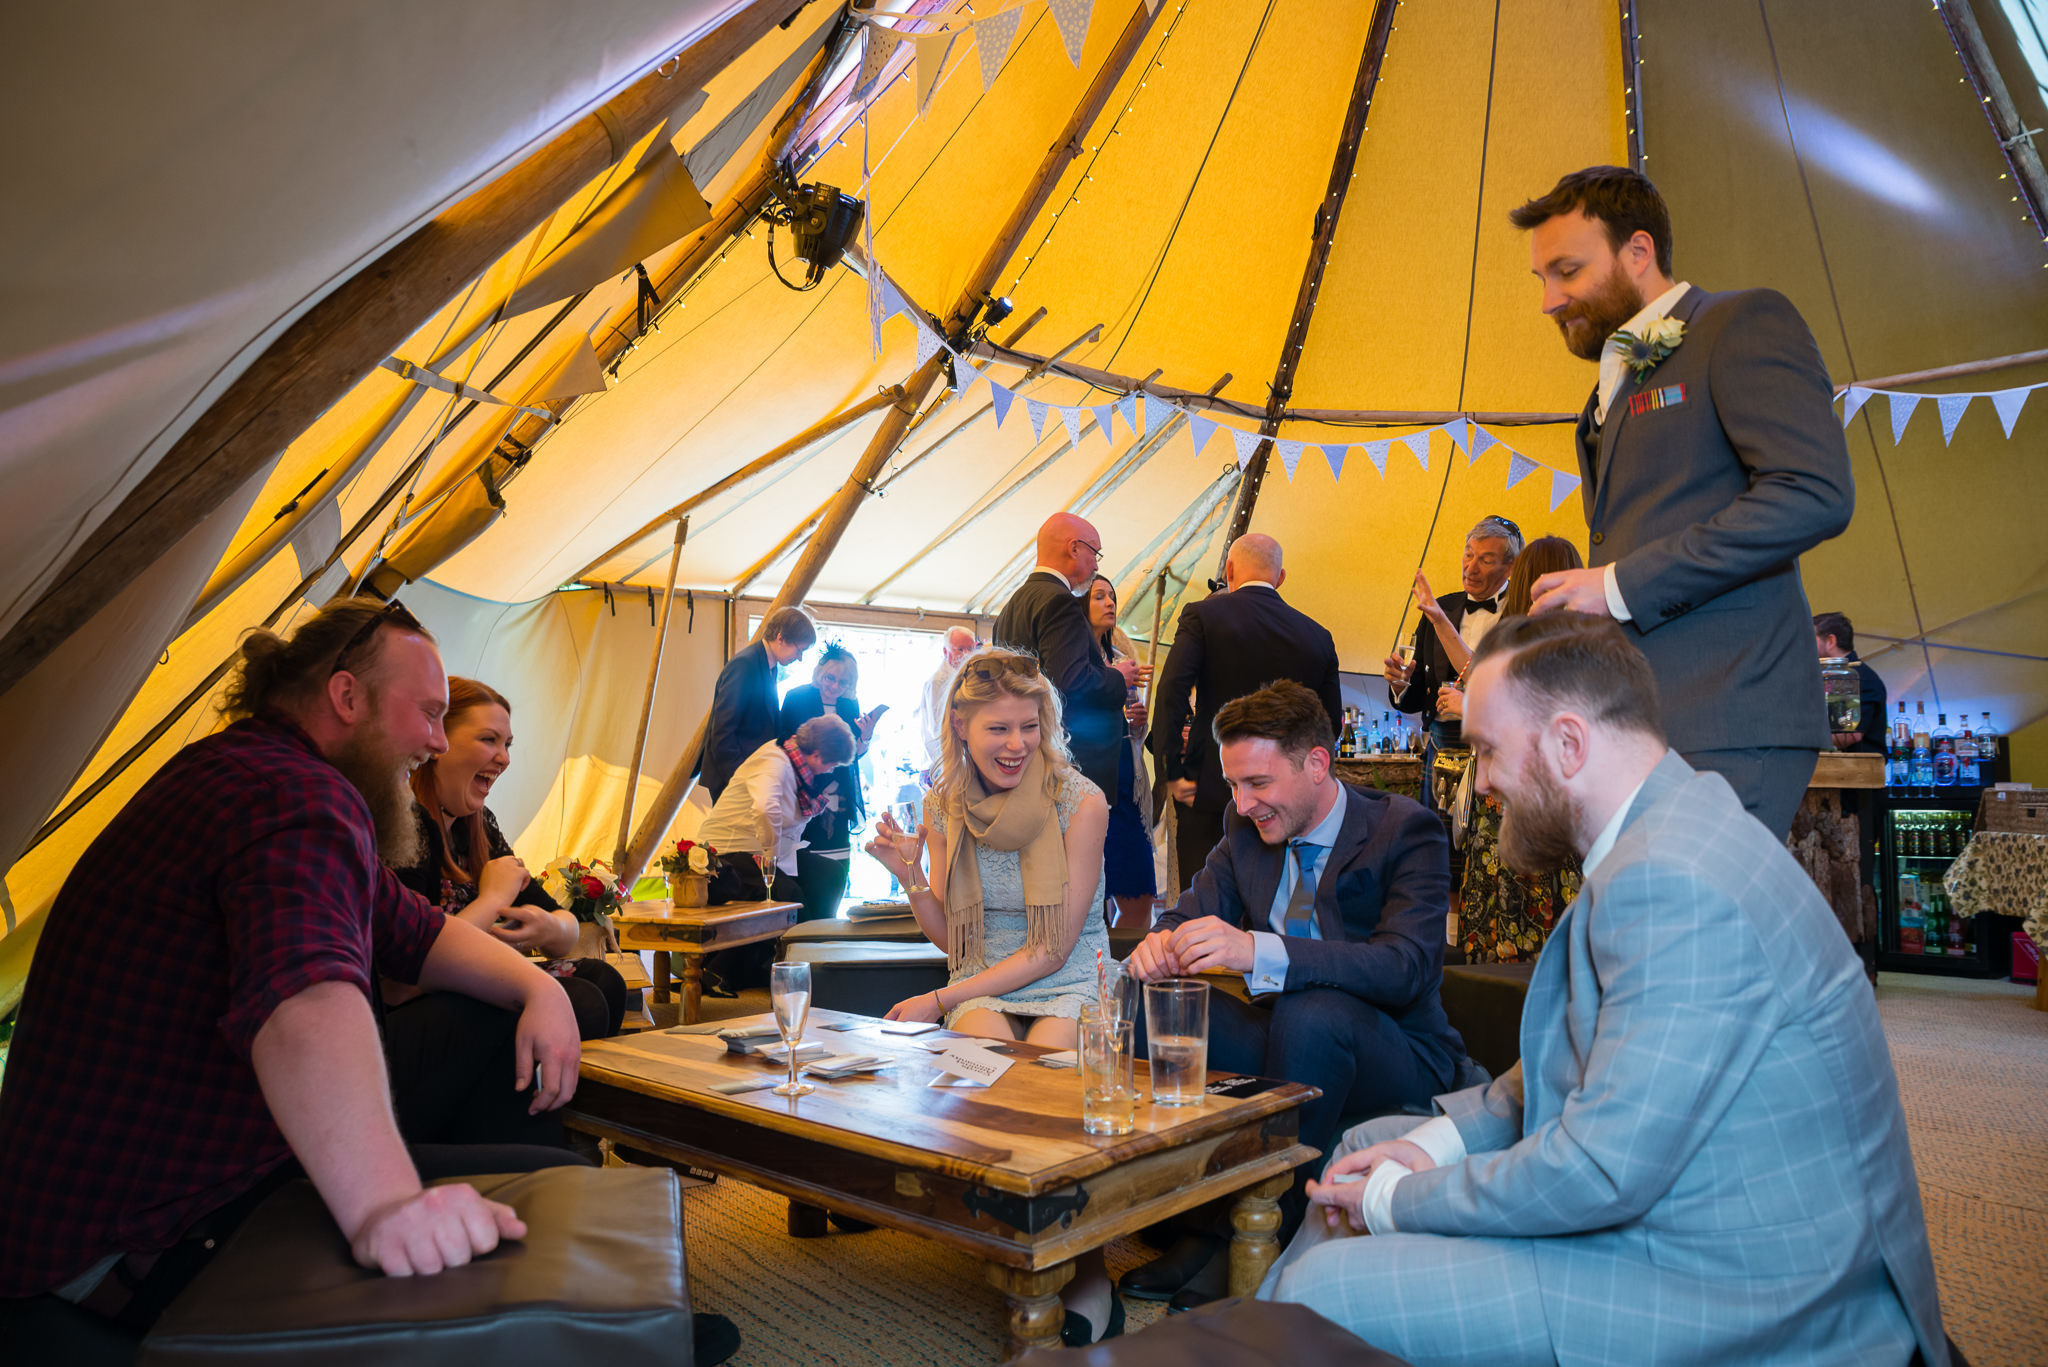 Wedding guests sitting down inside the teepee